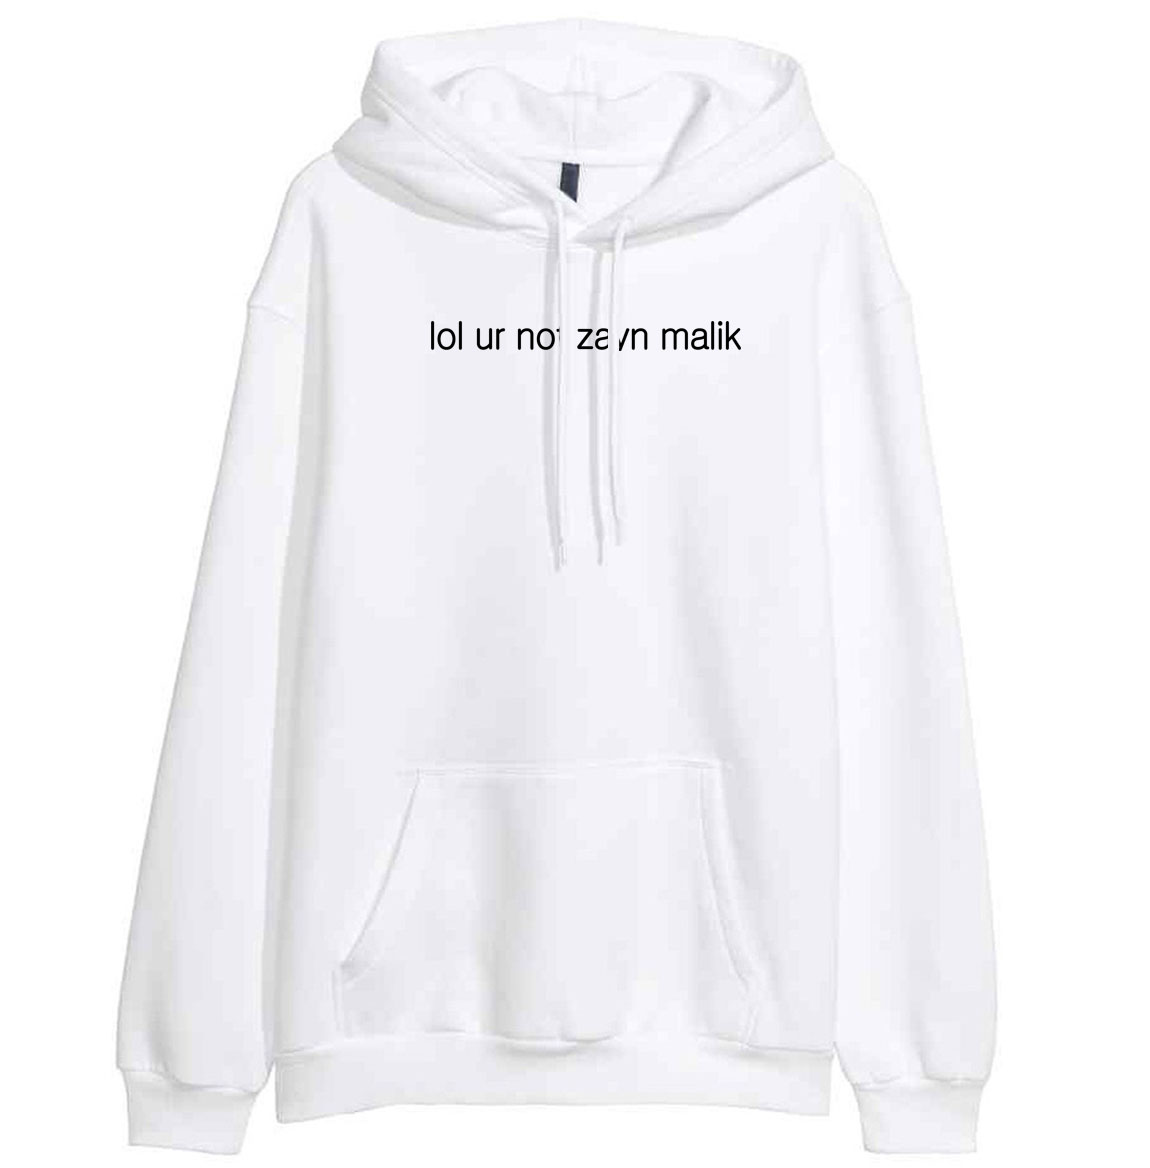 2018 Spring Winter Fleece Hoodies For Women Letter Print LOL UR NOT ZAYN MALIK Casual Womens Sportswear Harajuku Hoody Crossfit